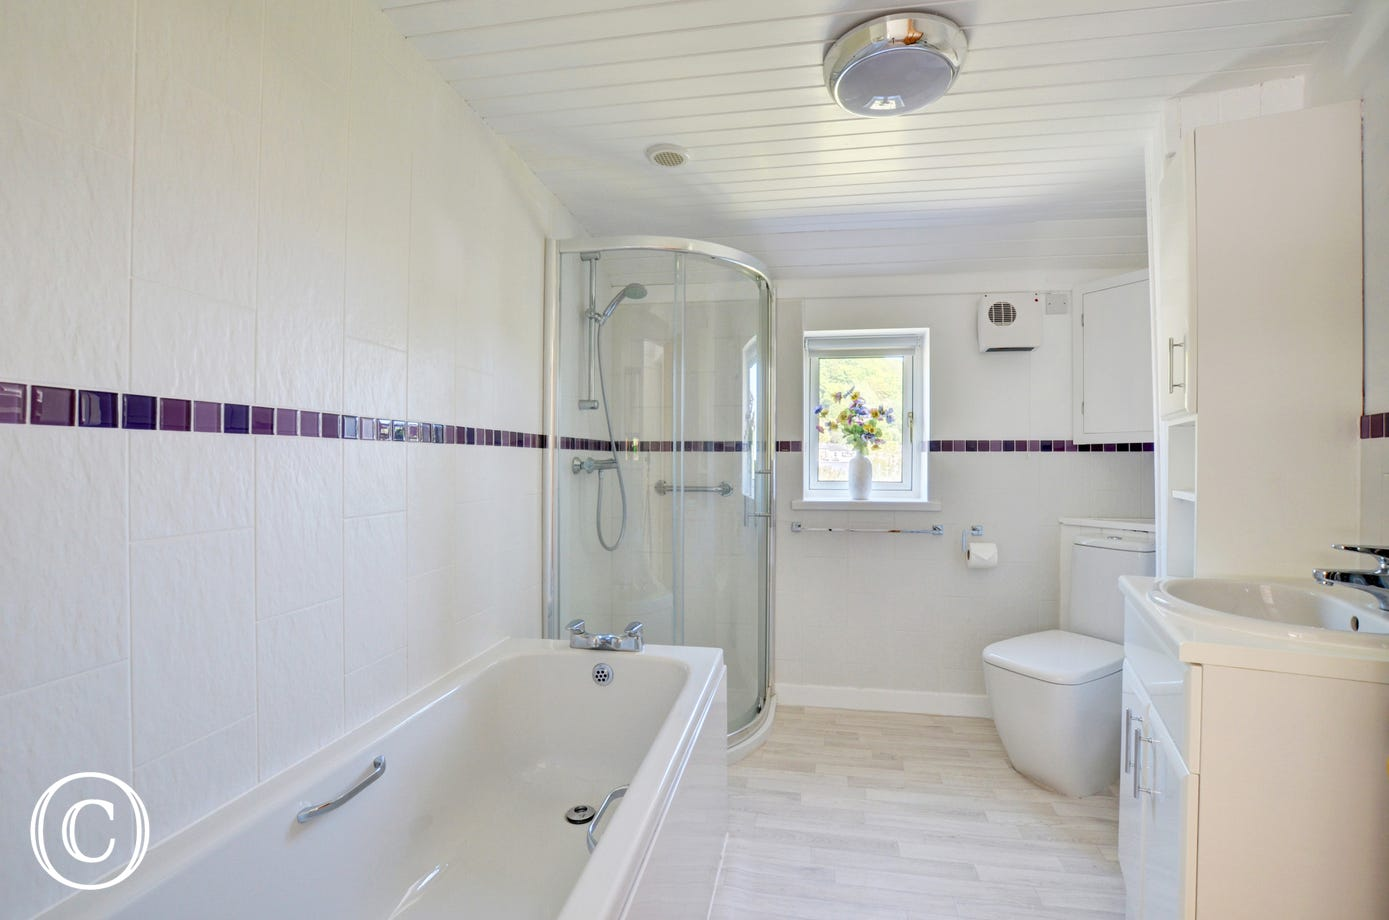 The bathroom has a stained glass window, a bath, shower cubicle, heated towel rail, basin and WC